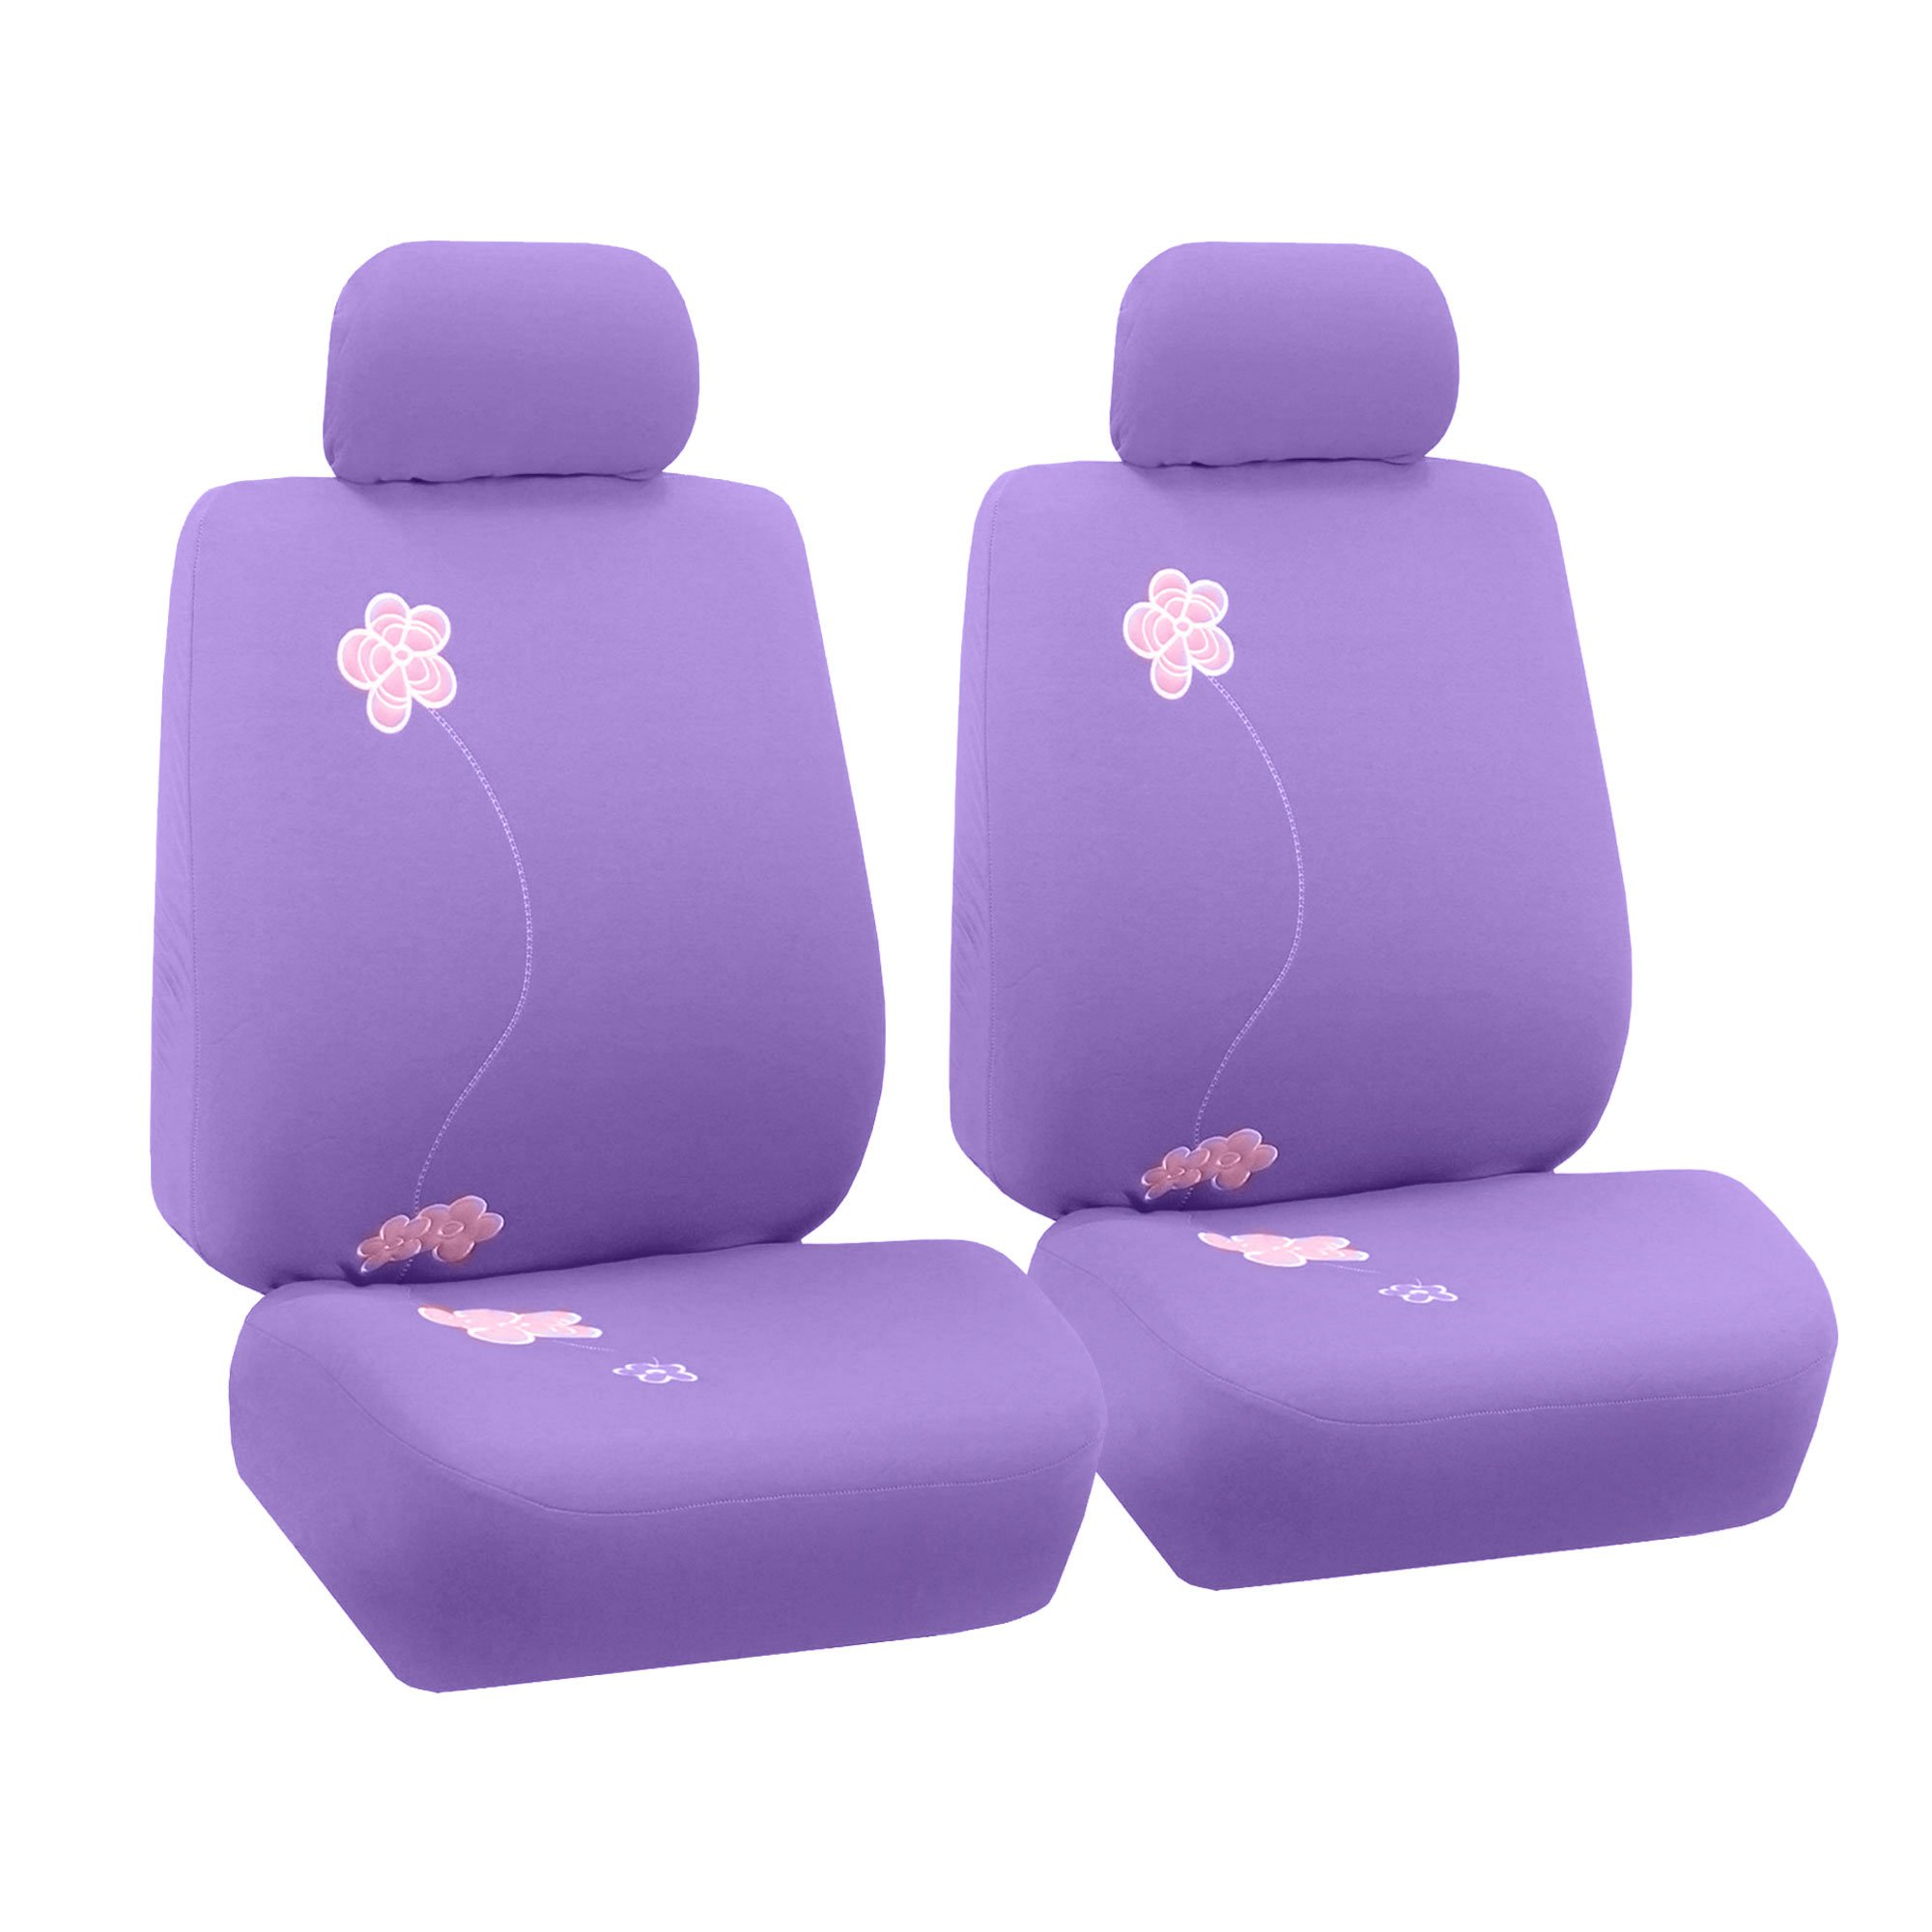 FH Group FB053PURPLE102 Seat Cover (Flower Embroidery Airbag Compatible (Set of 2) Purple) by FH Group